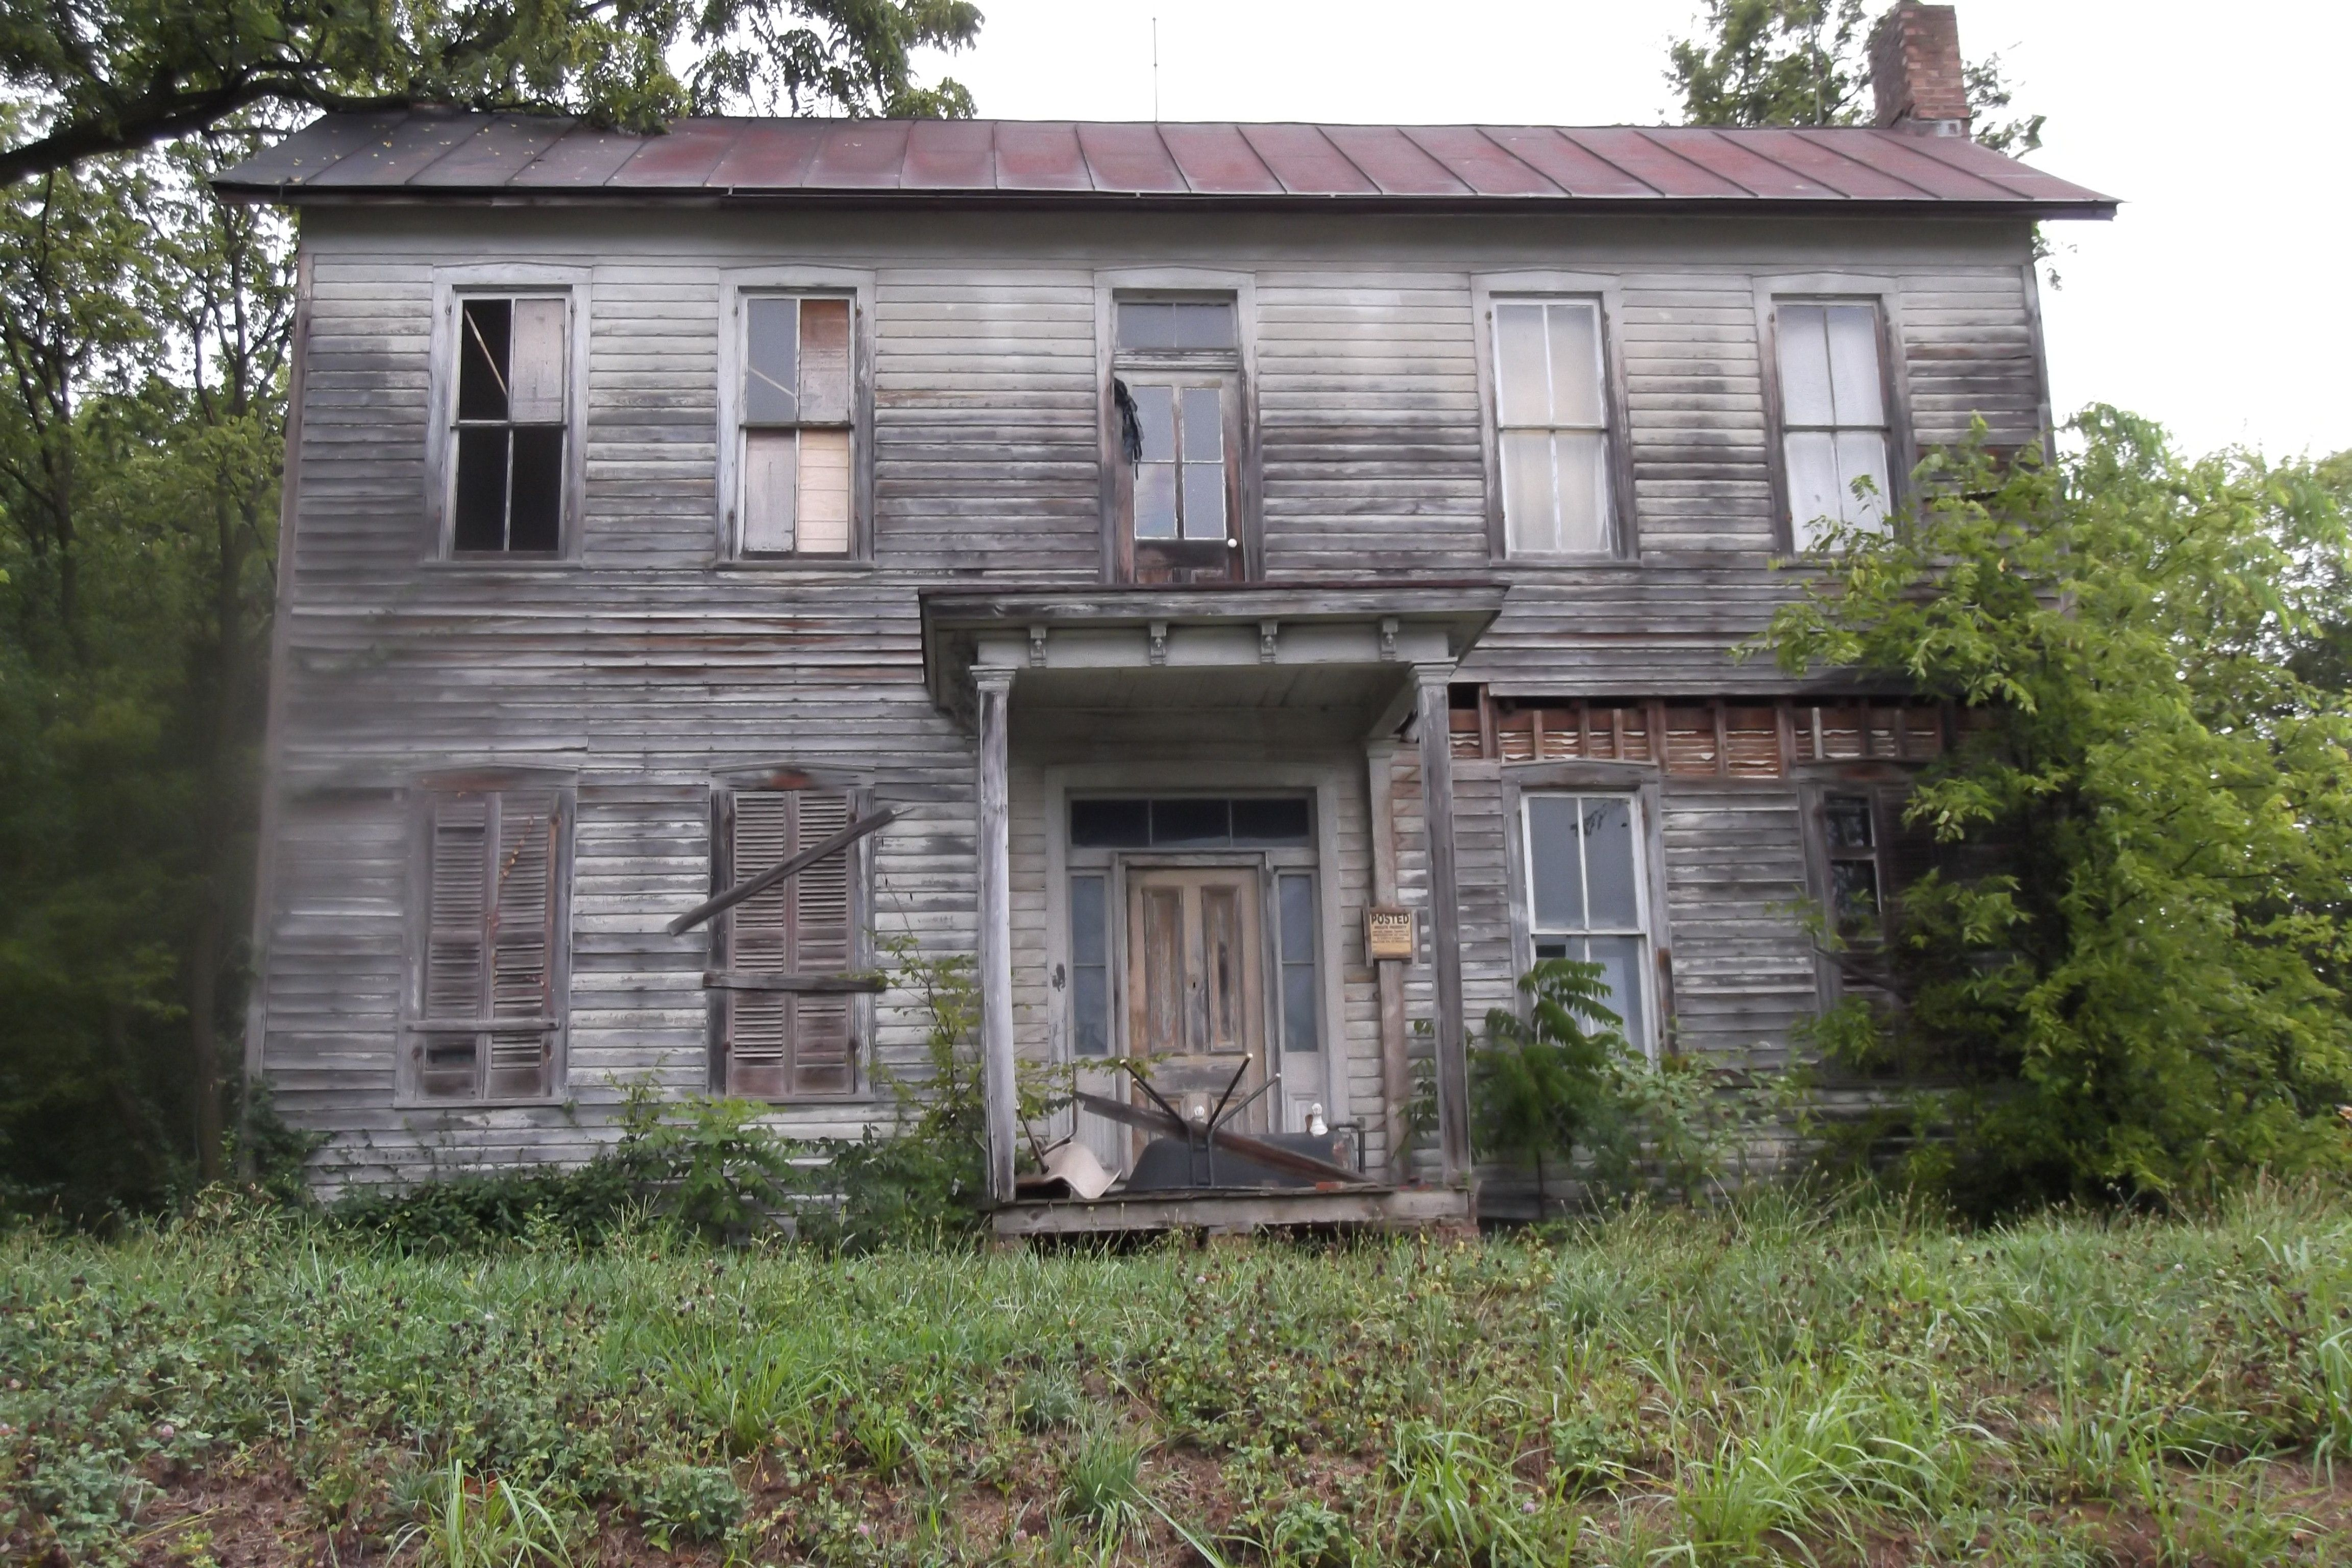 Southern Illinois Abandoned Home Southern Illinois